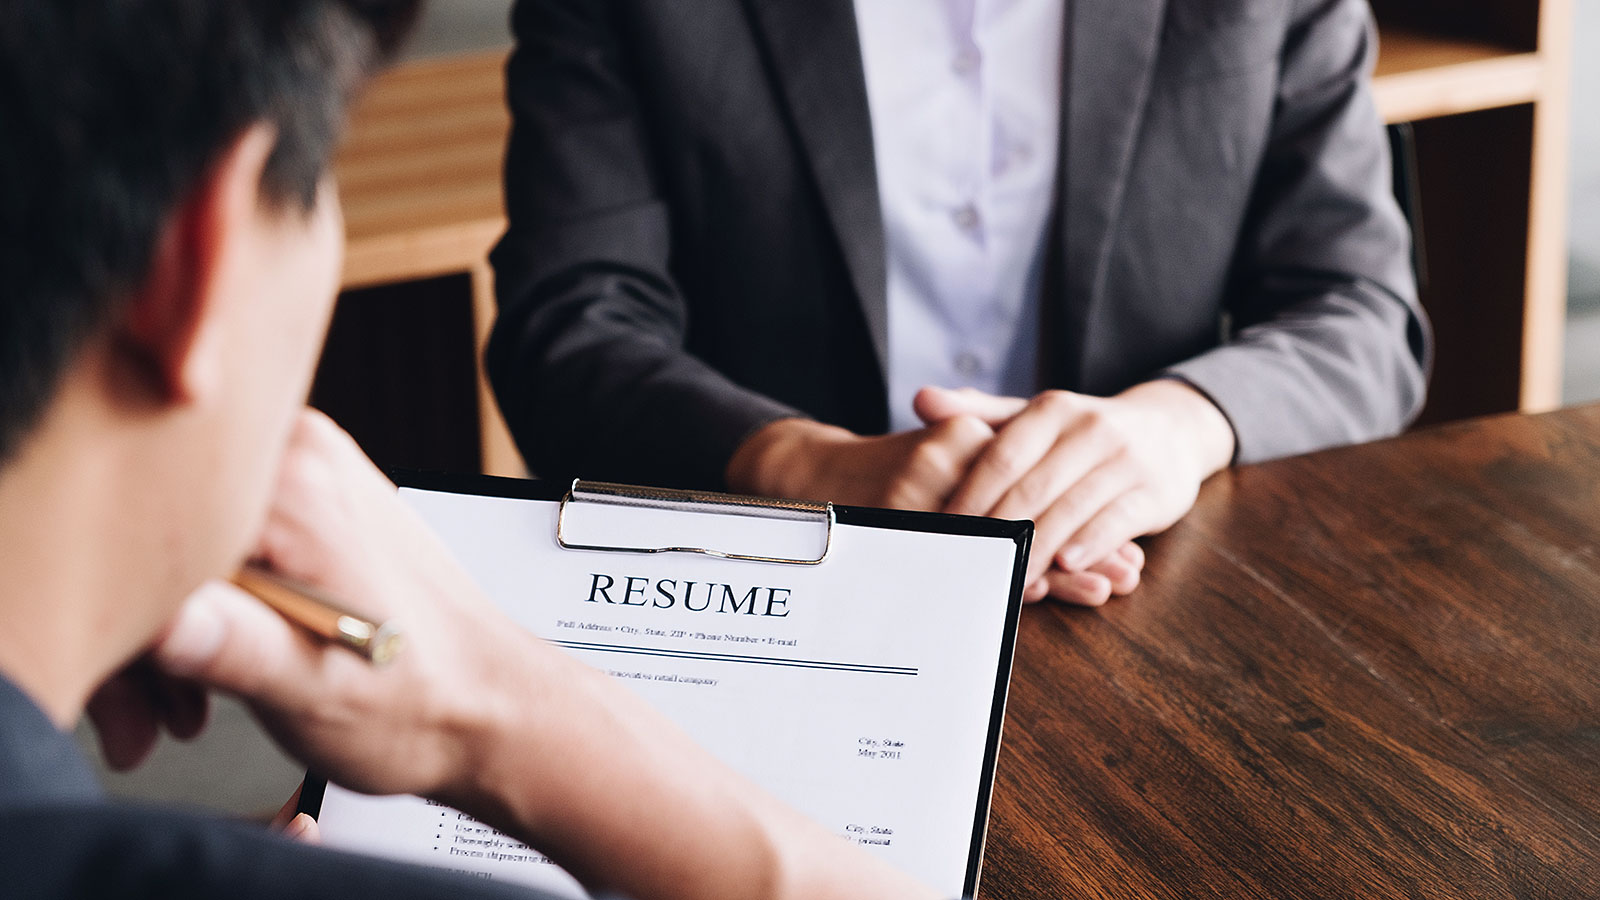 Give Your Career A Boost With Good Resume Making Skills